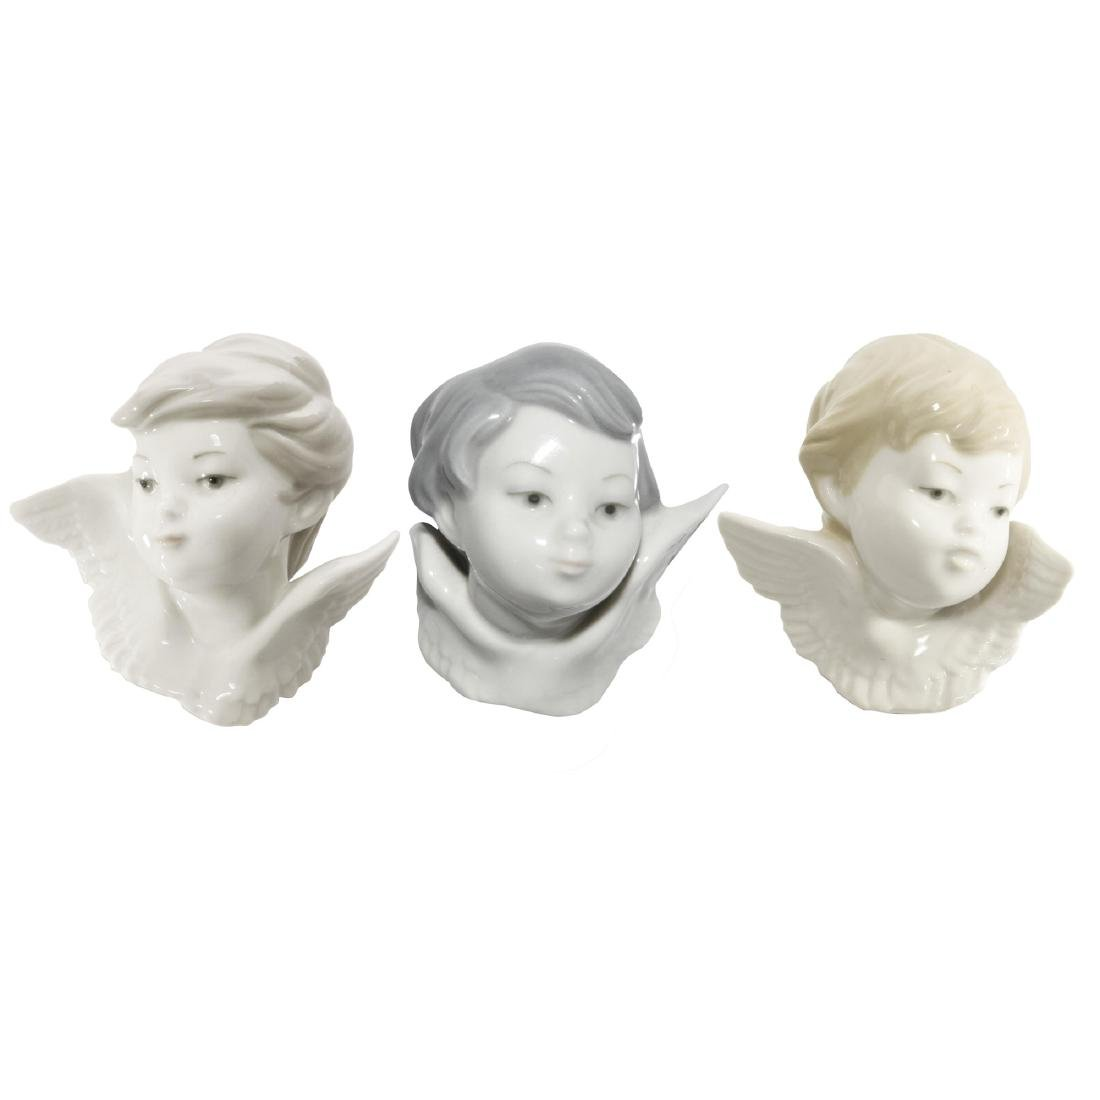 GROUP OF 3 LLADRO FIGURINES OF ANGELS CHERUBS